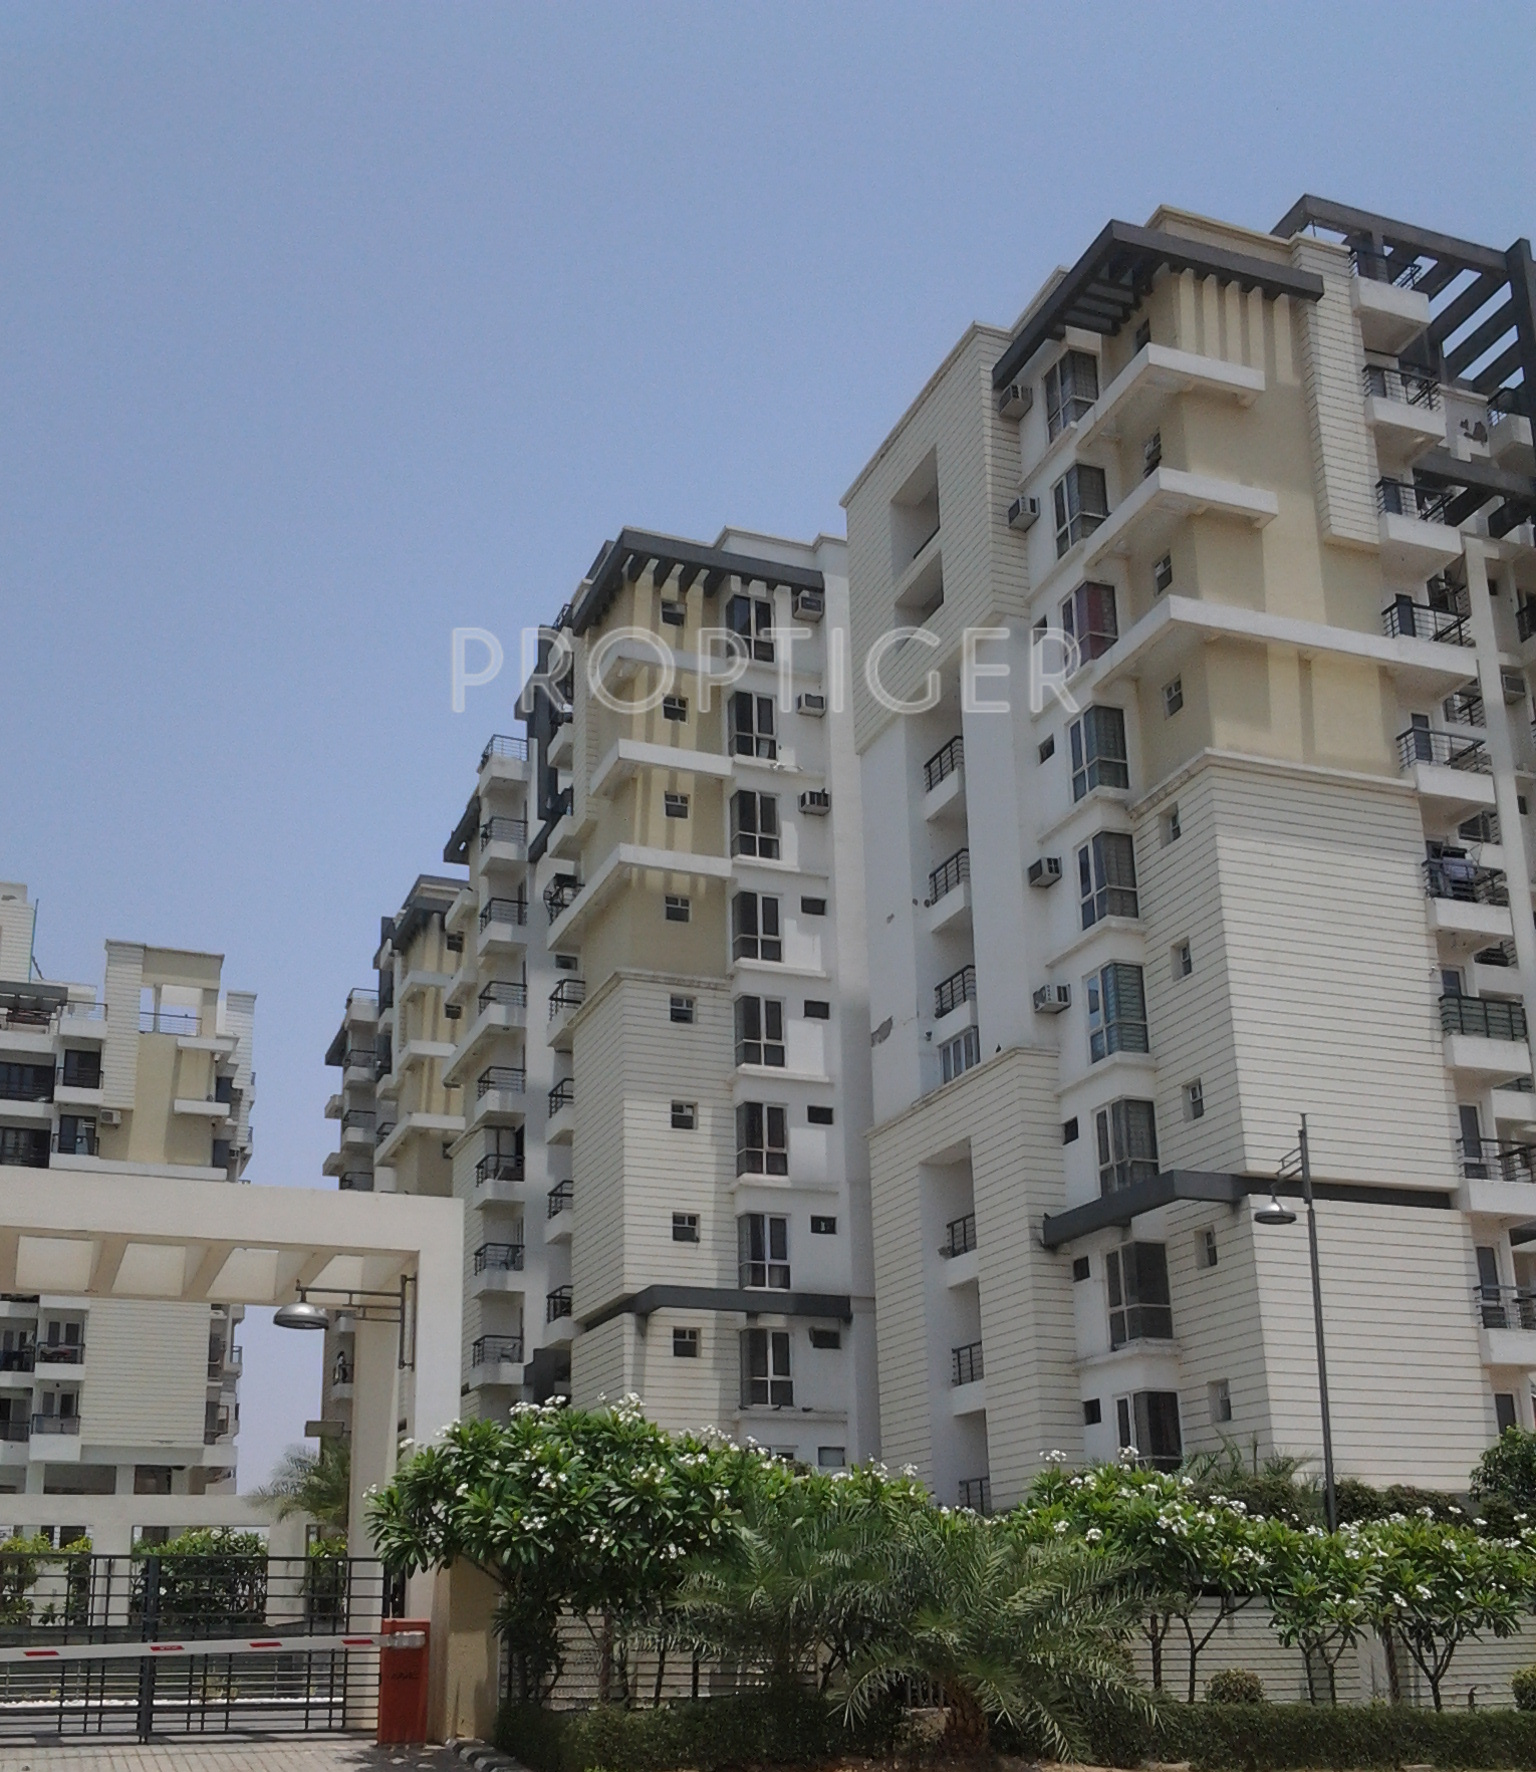 1496 sq ft 3 BHK 2T Apartment for Sale in Ashadeep Group